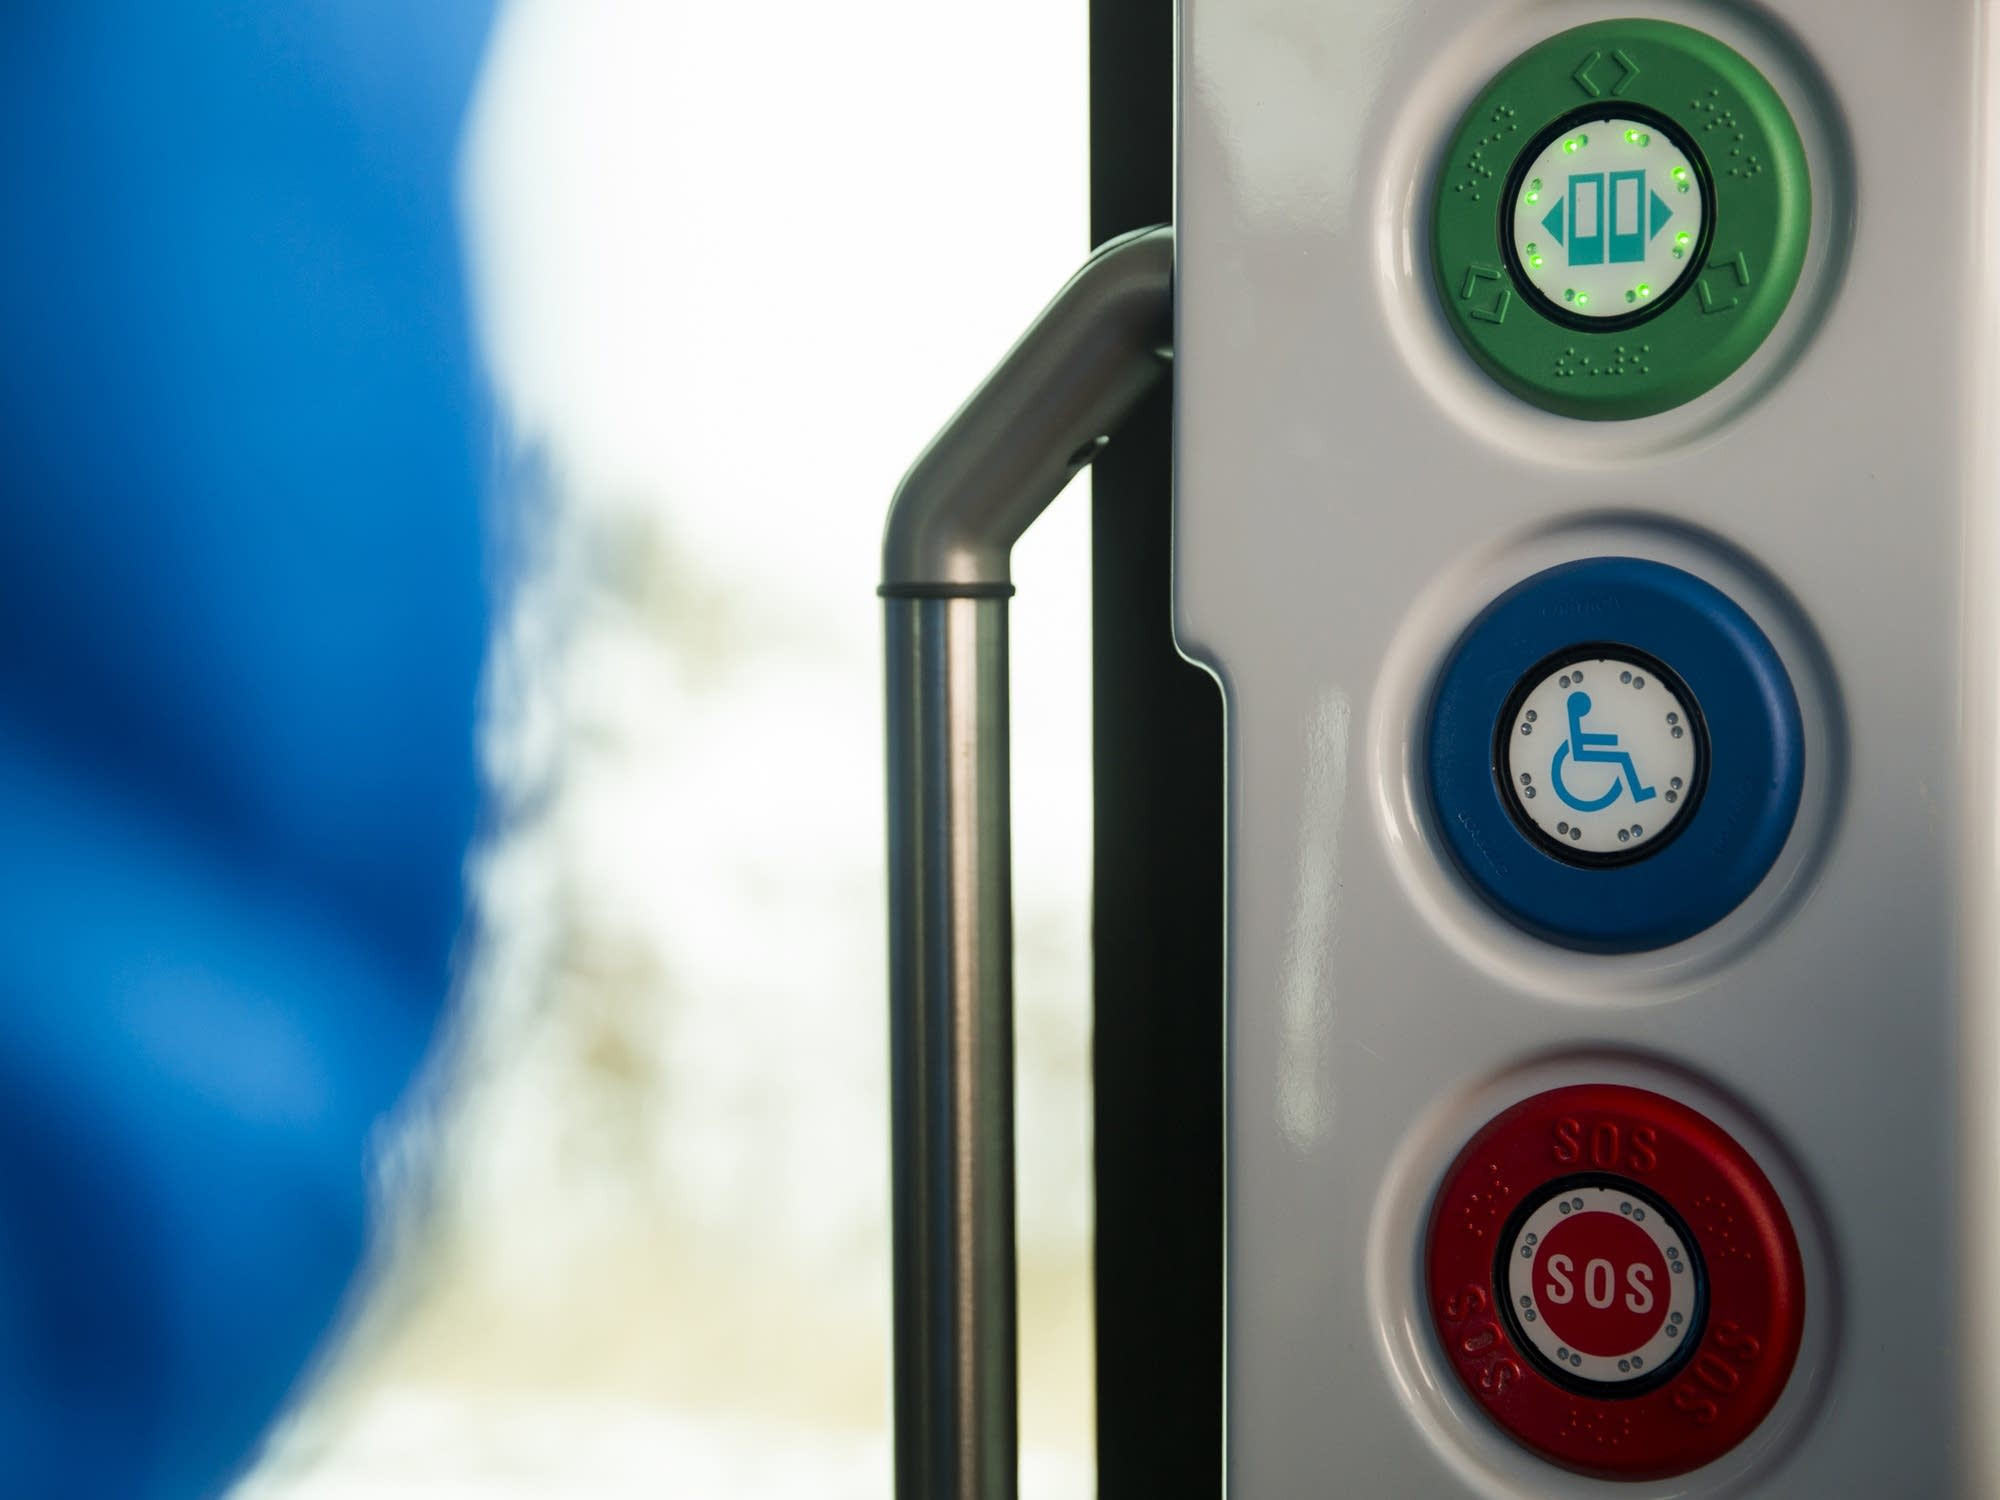 Door, disability and emergency buttons on the autonomous shuttle.